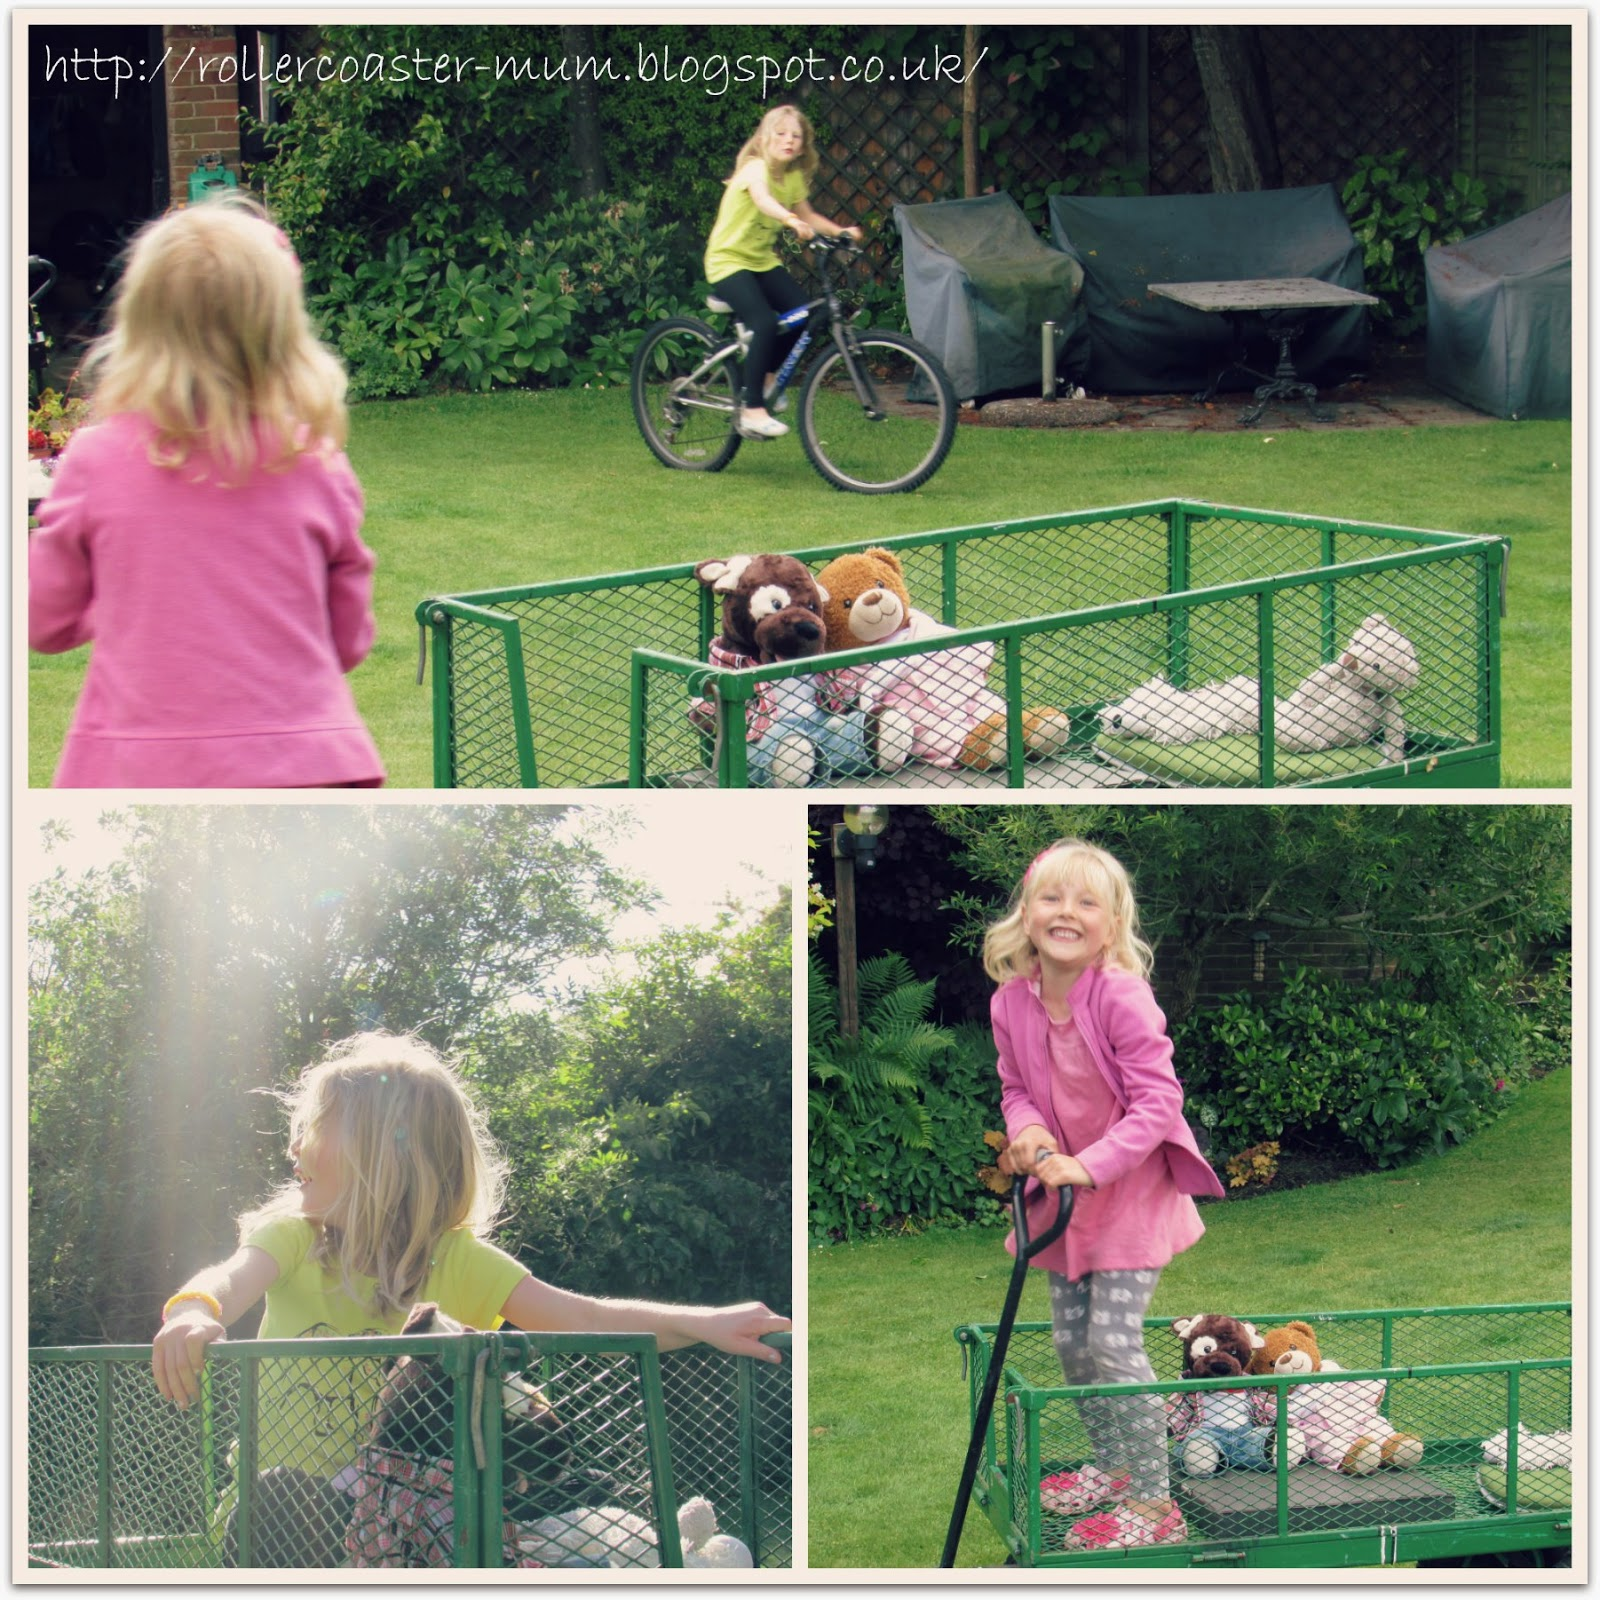 Fun with the garden trolley